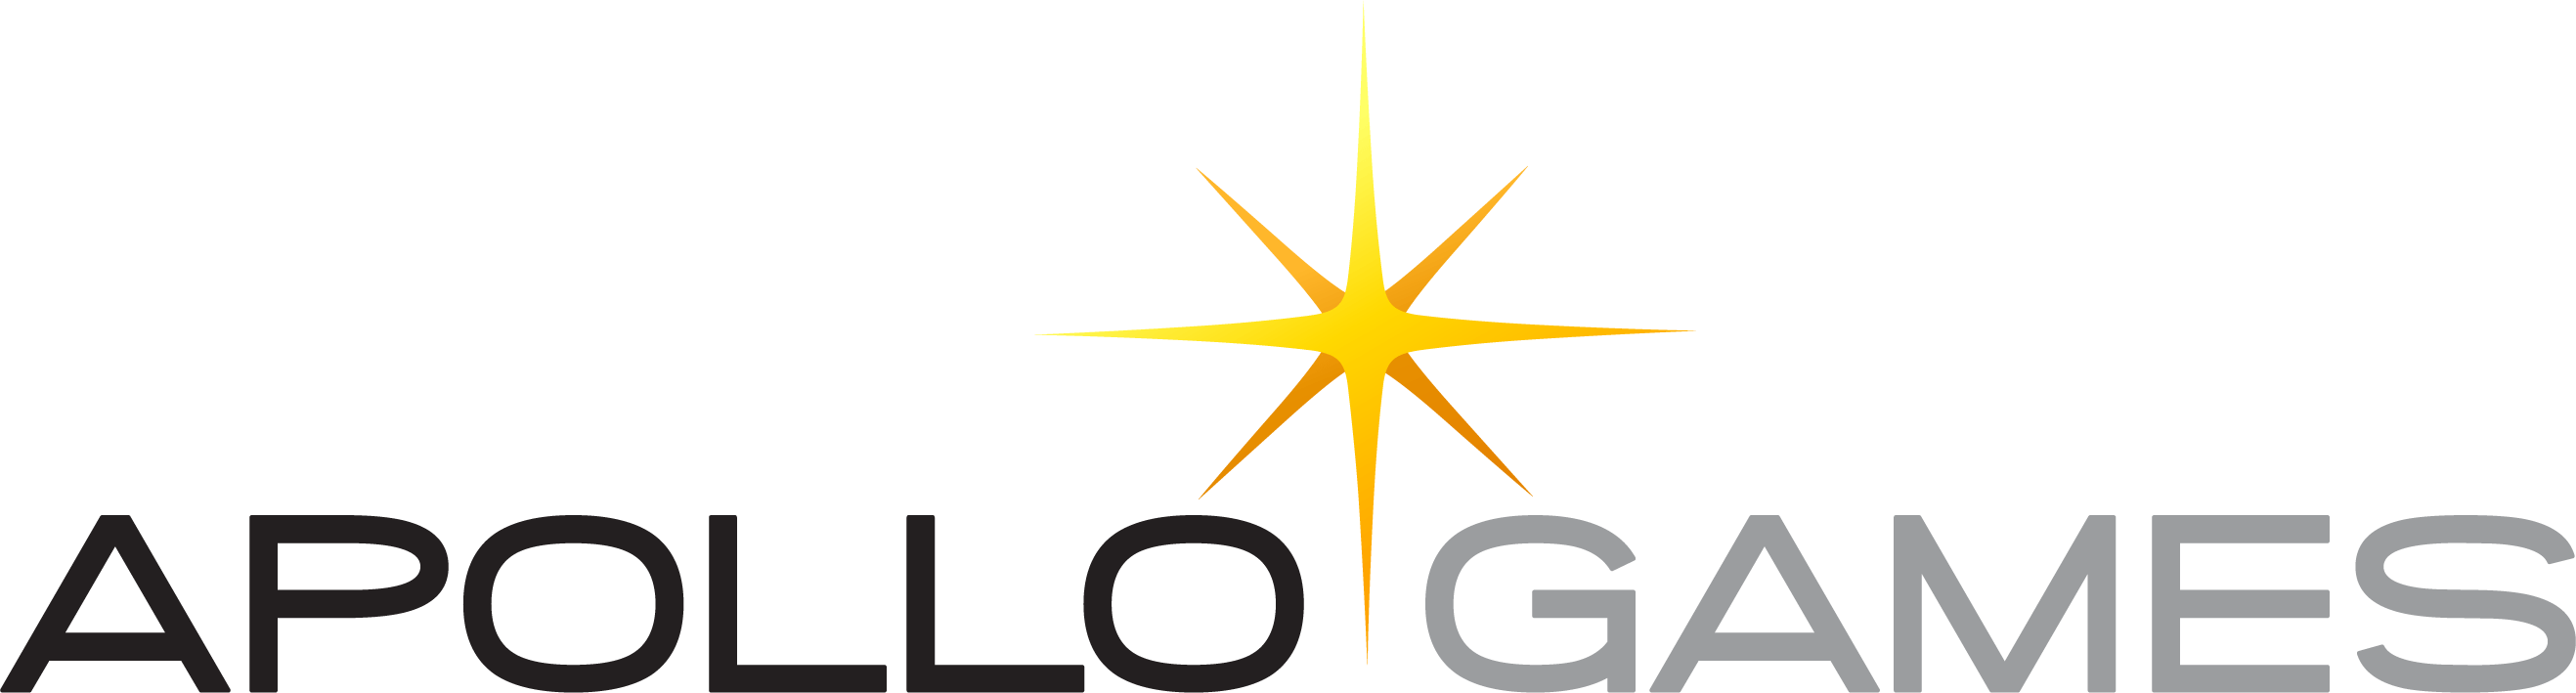 Apollo Games software and games for online casinos